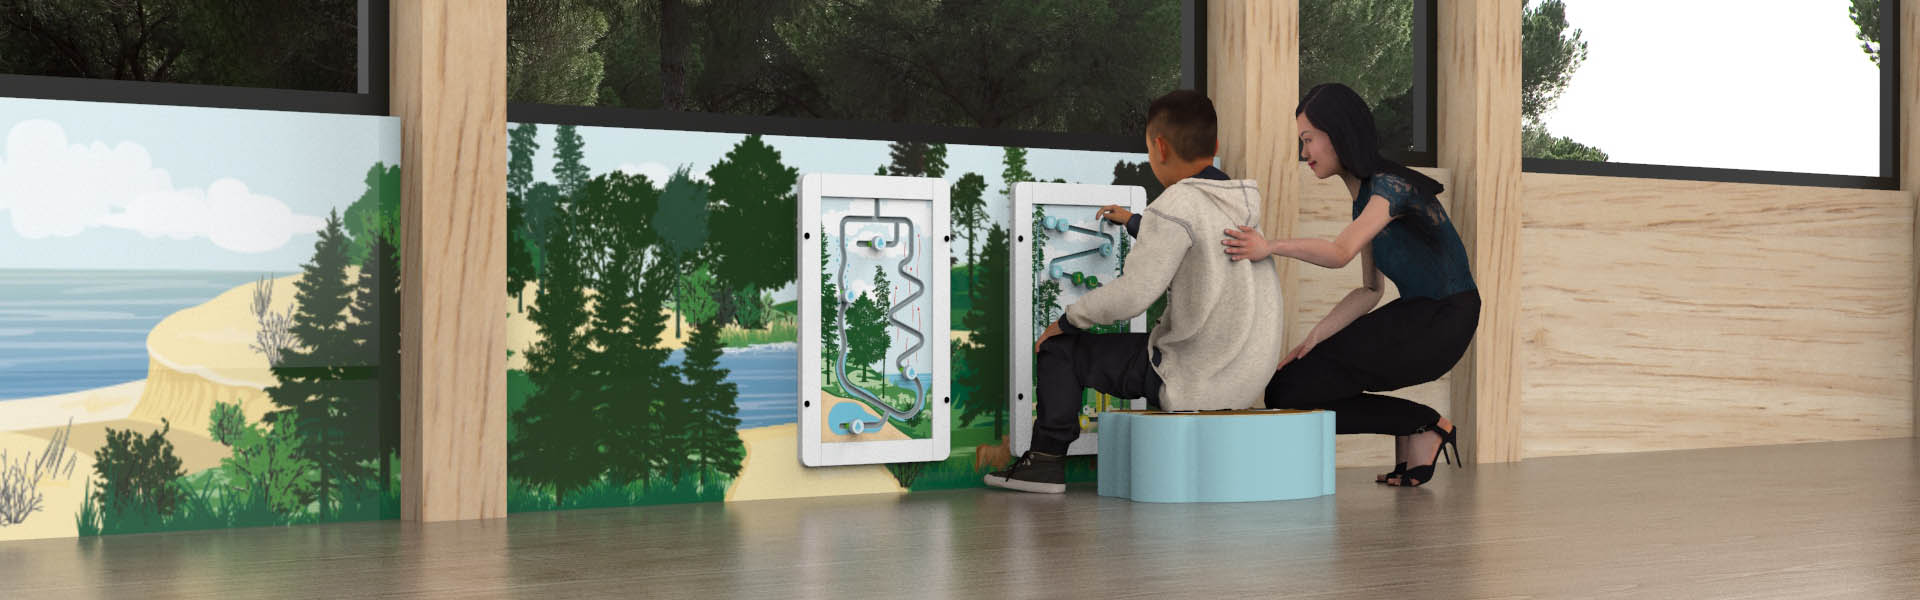 This image shows a boy playing with a educational wall game